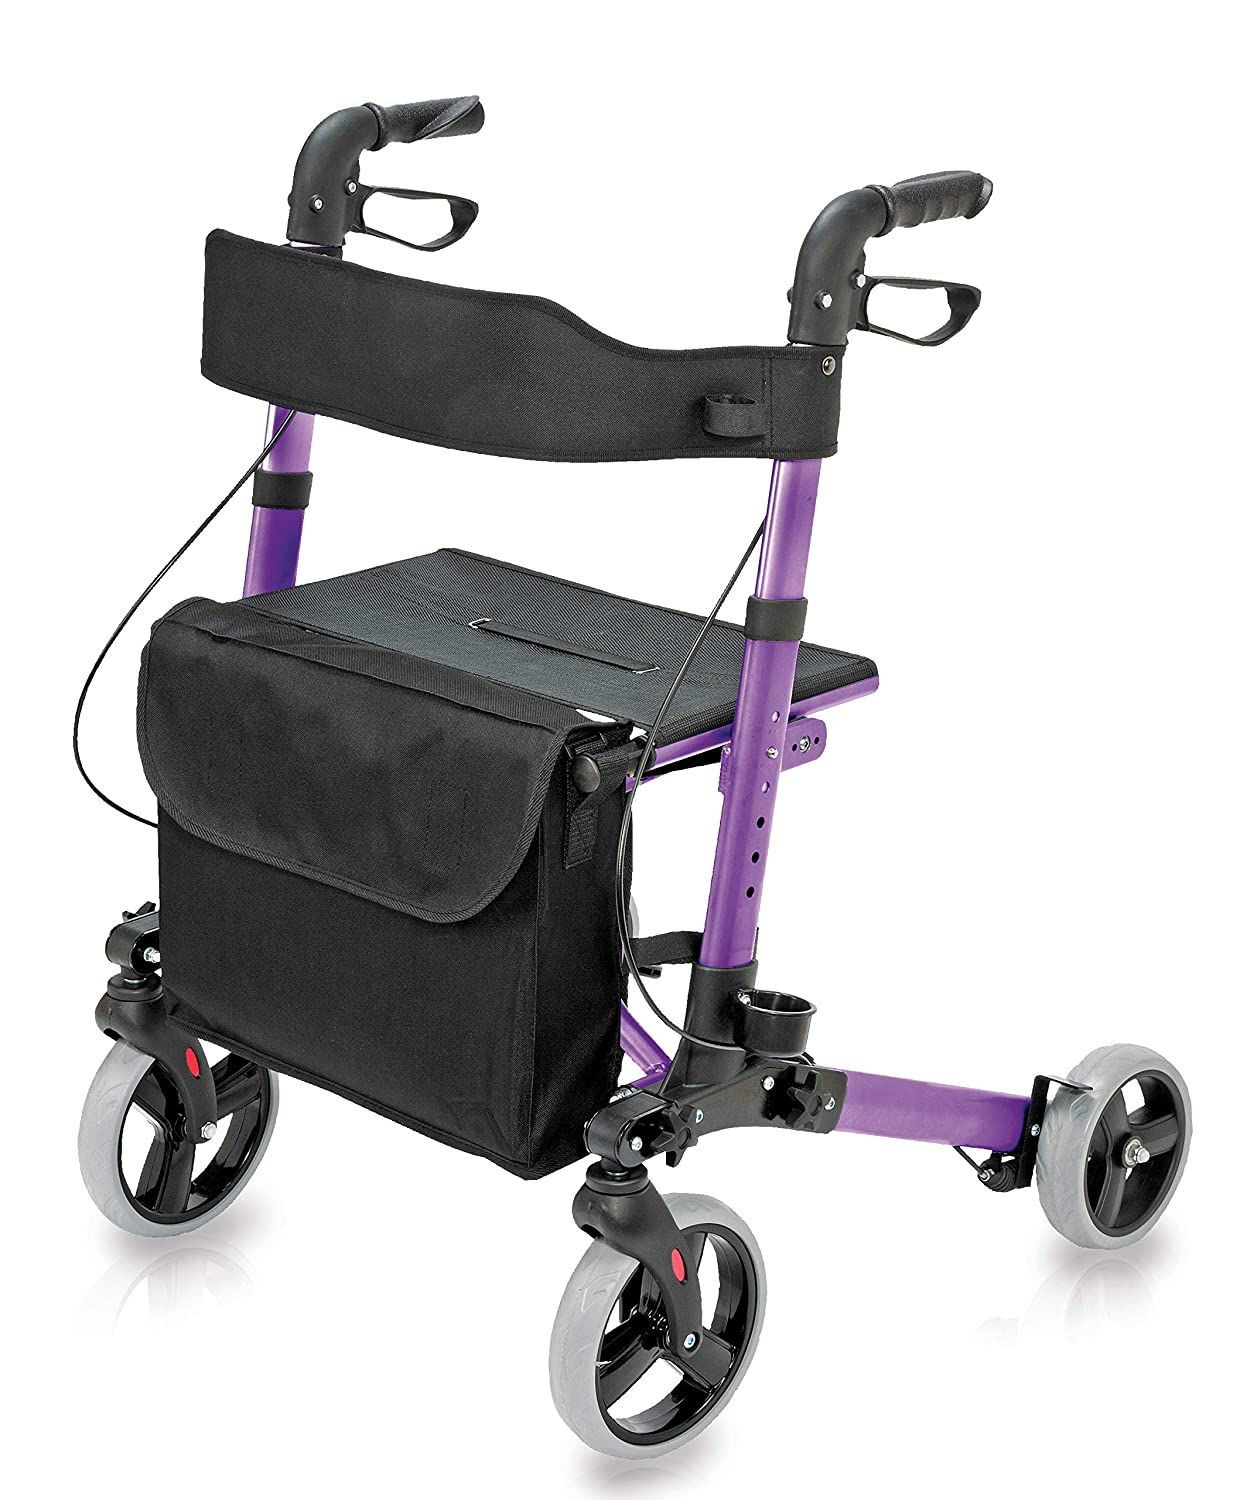 Four Wheel Rollator Walker with Seat for Seniors made of compact folding lightweight aluminum includes seat, backrest, cane holder and storage tote holds a weight capacity up to 300 pounds, Purple HealthSmart 501-5012-1110